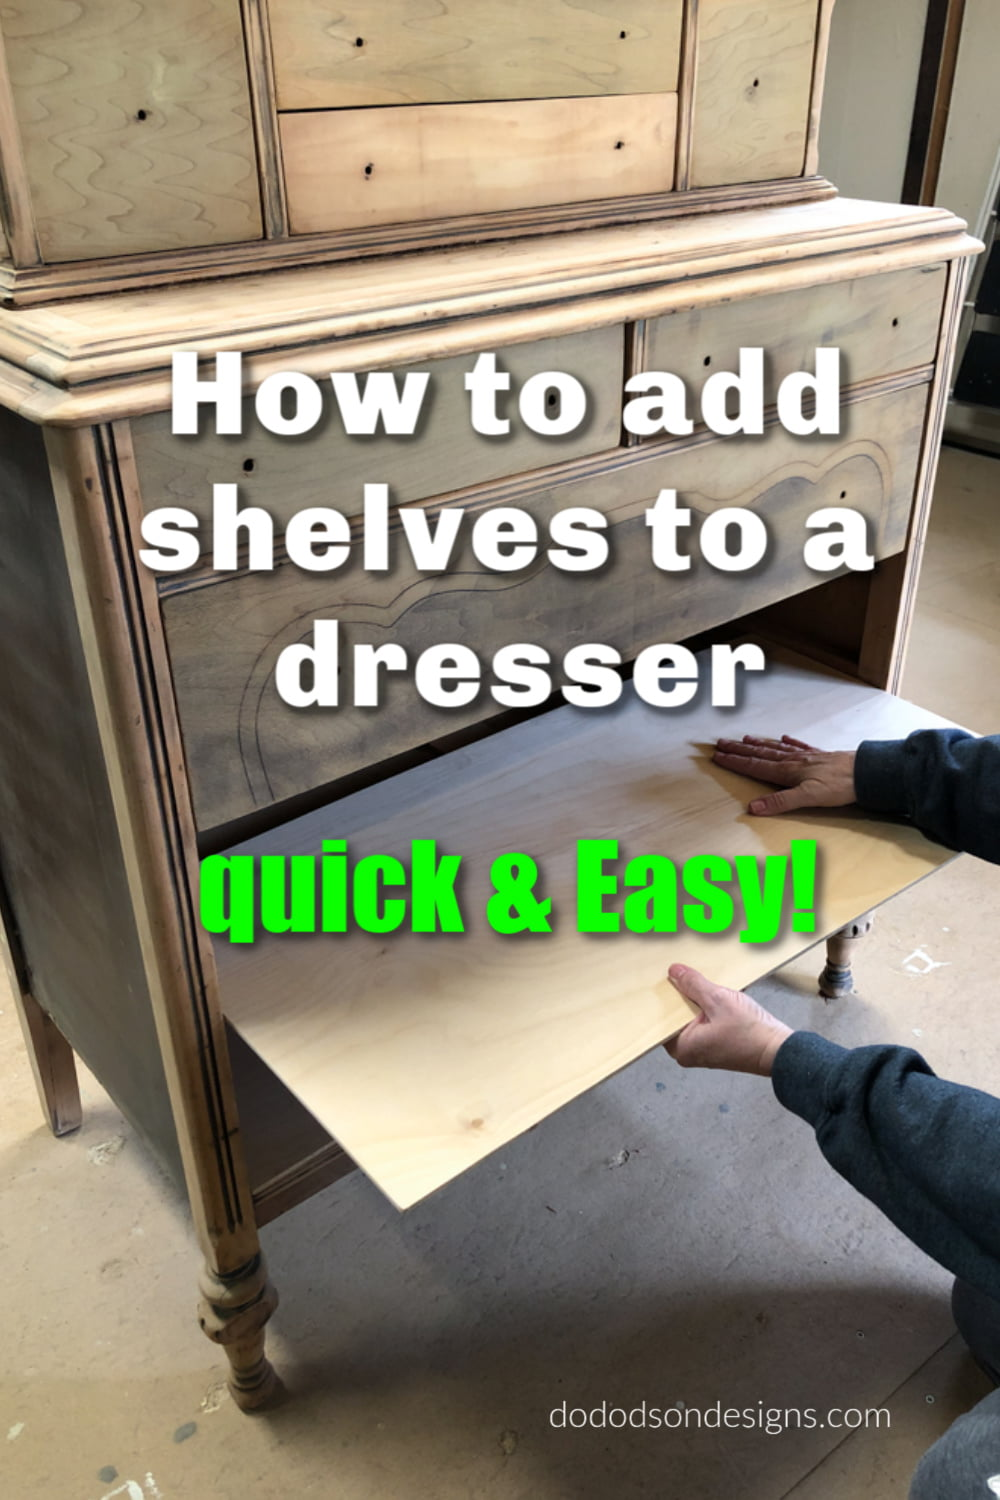 How To Add Shelves To A Dresser- Quick and Easy